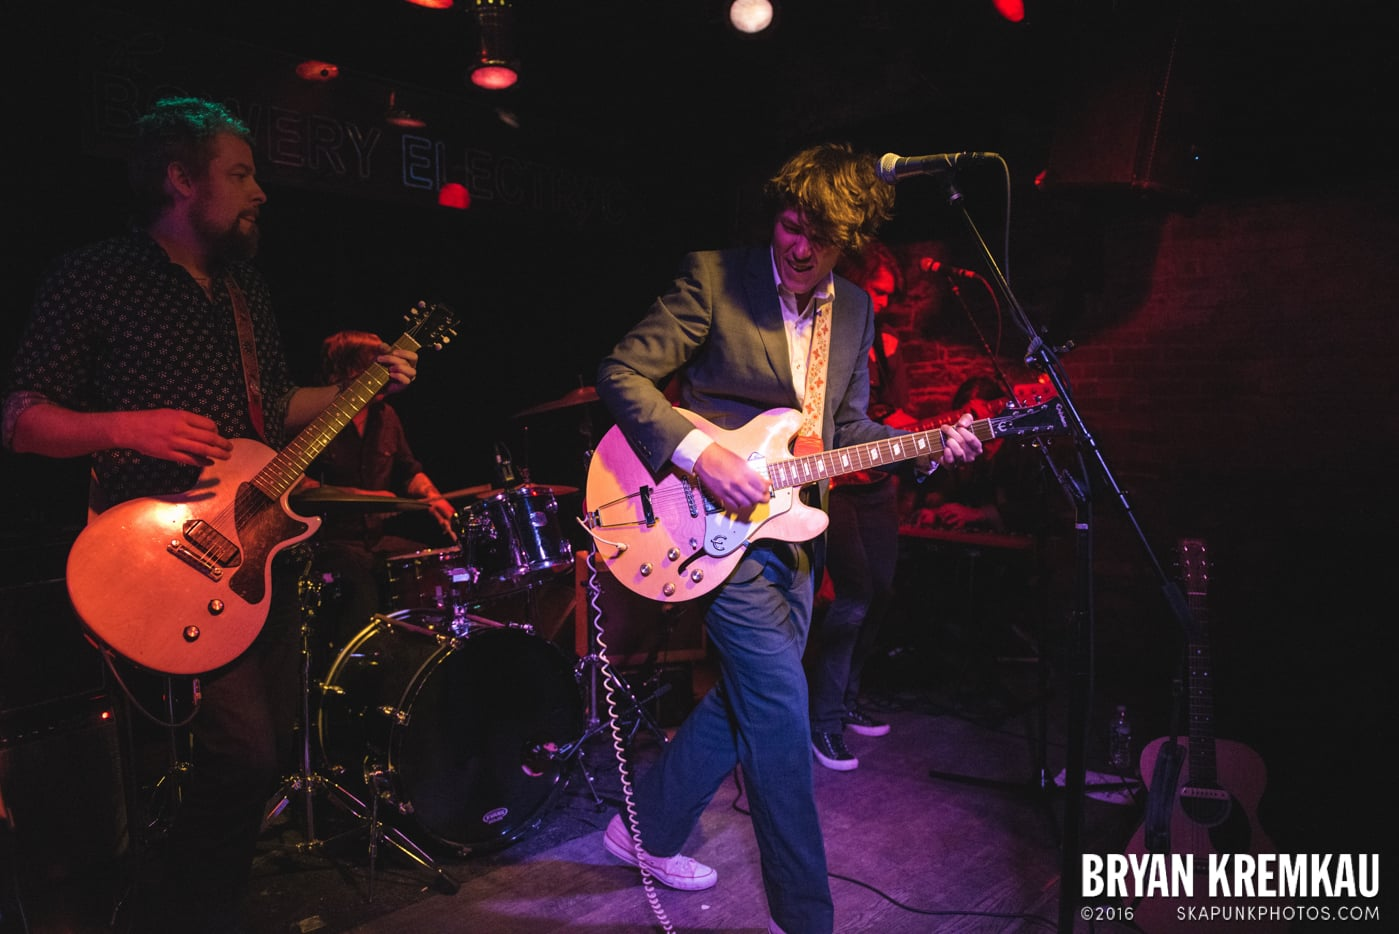 Trapper Schoepp & The Shades @ Bowery Electric, NYC - 11.20.14 (20)